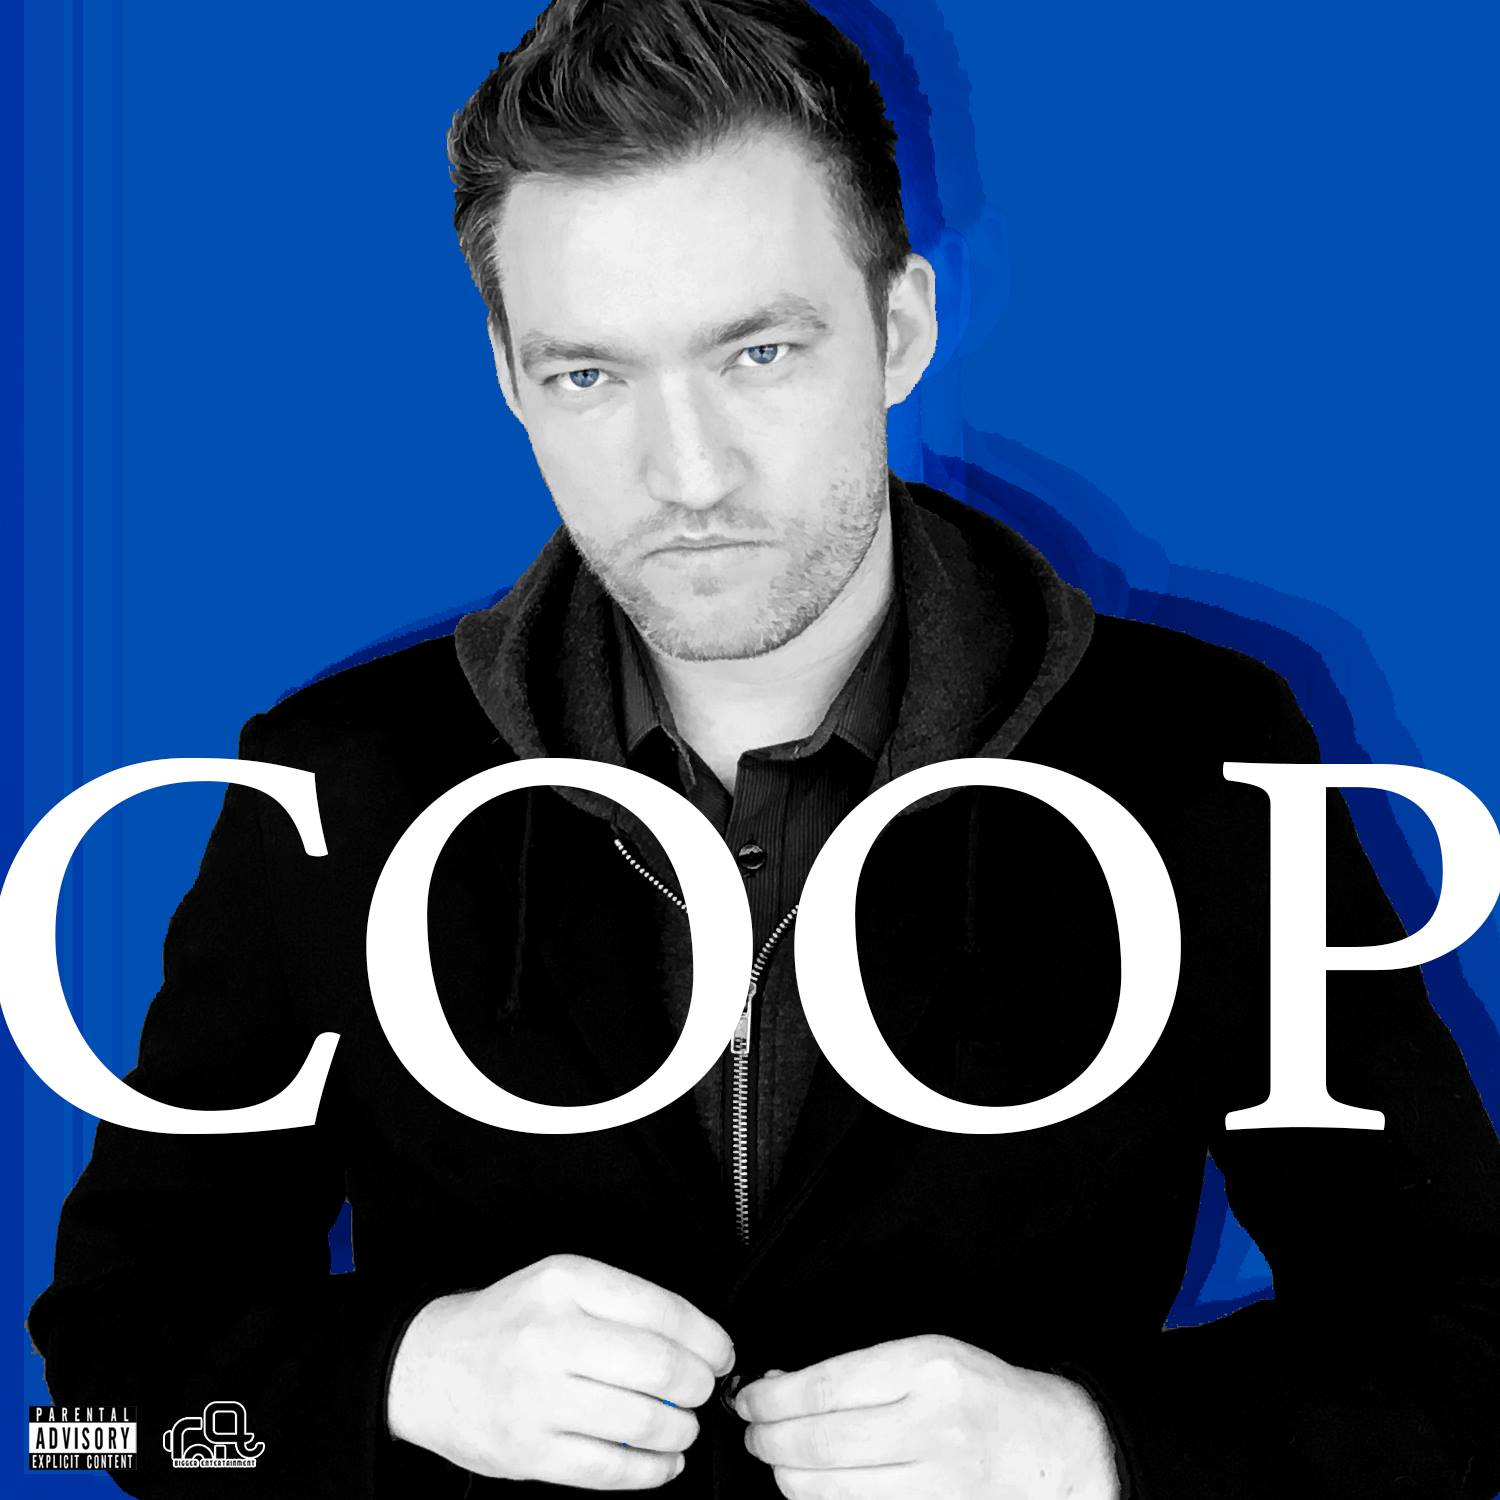 Steven Cooper announces new album, 'COOP'